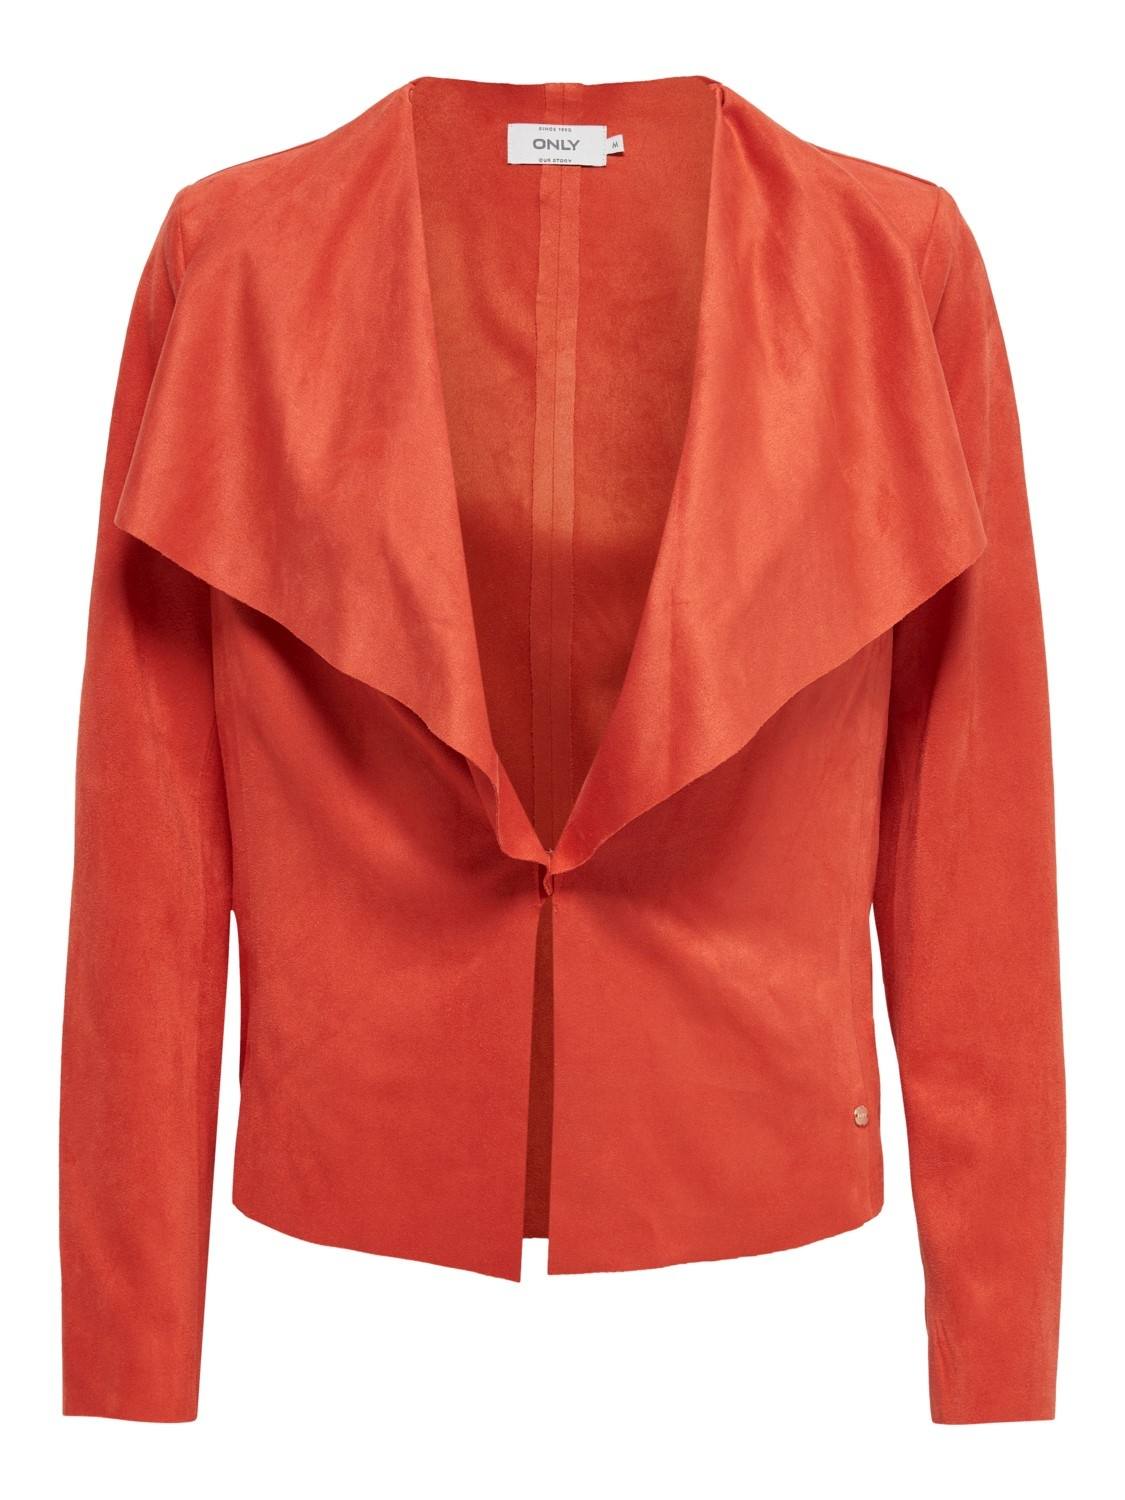 PEPITES only veste stacy drapy faux suede-1